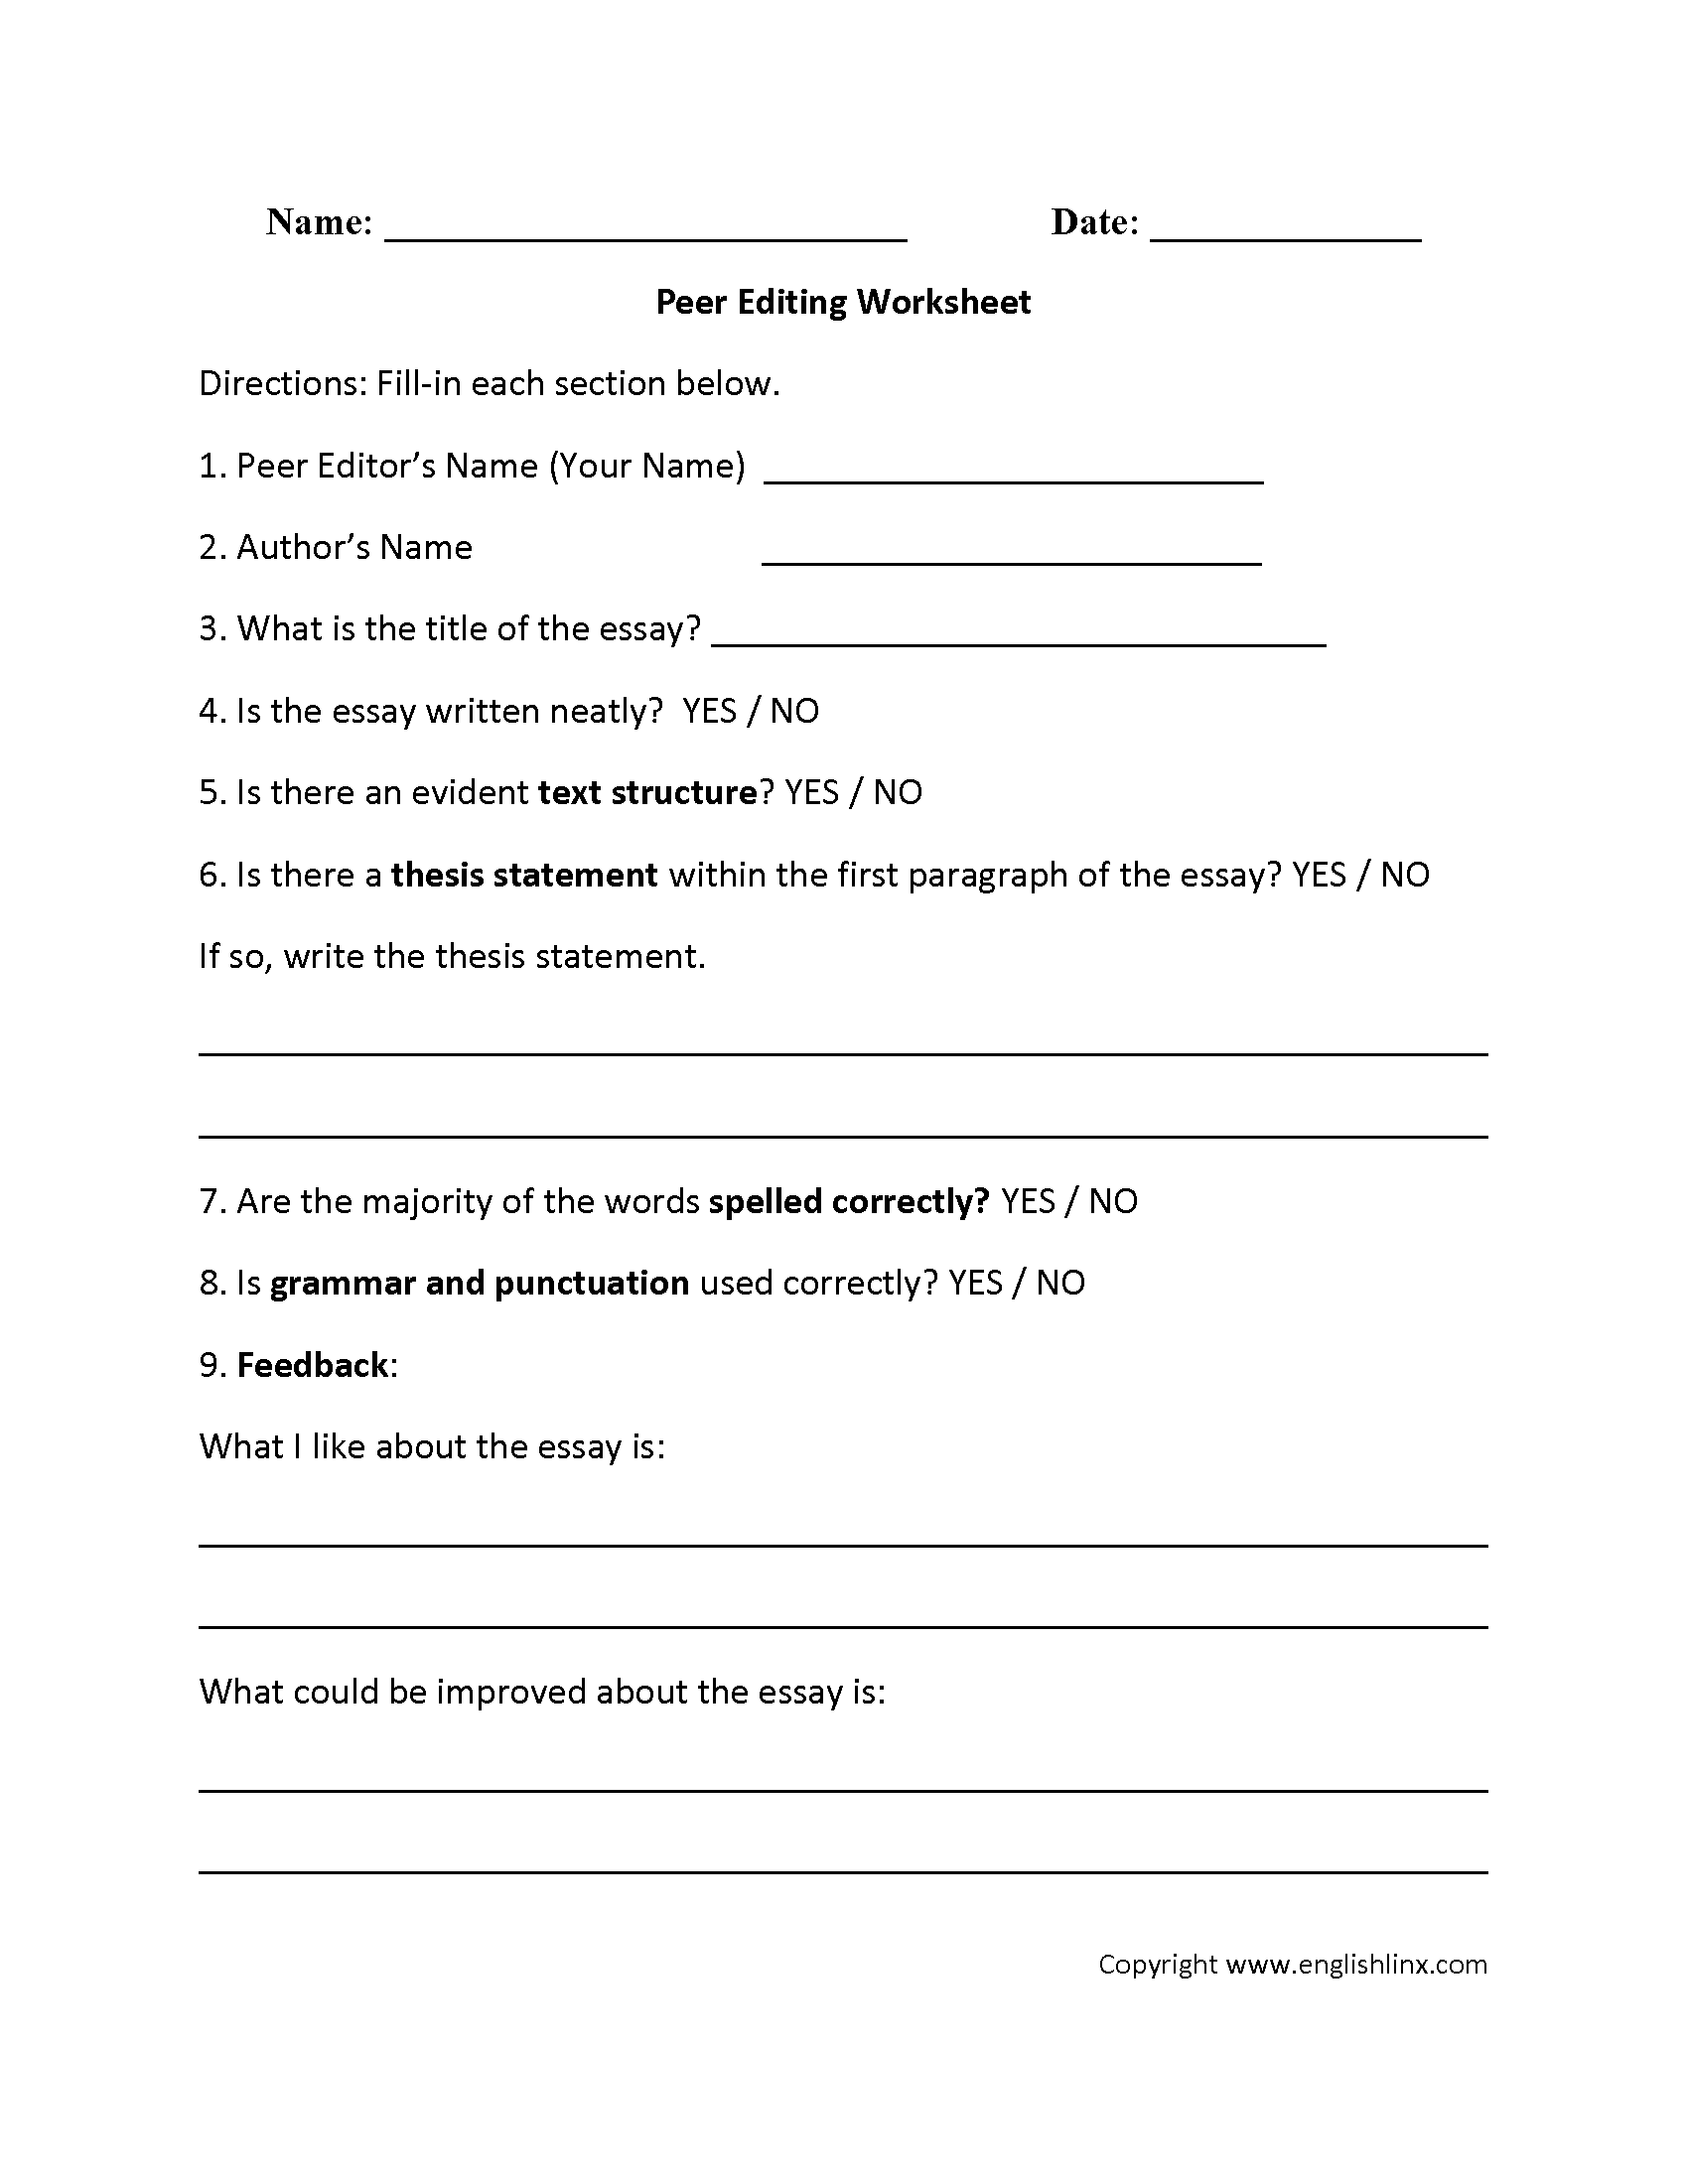 Kids  Editing Worksheets 4th Grade  Best Daily Math Ideas Year